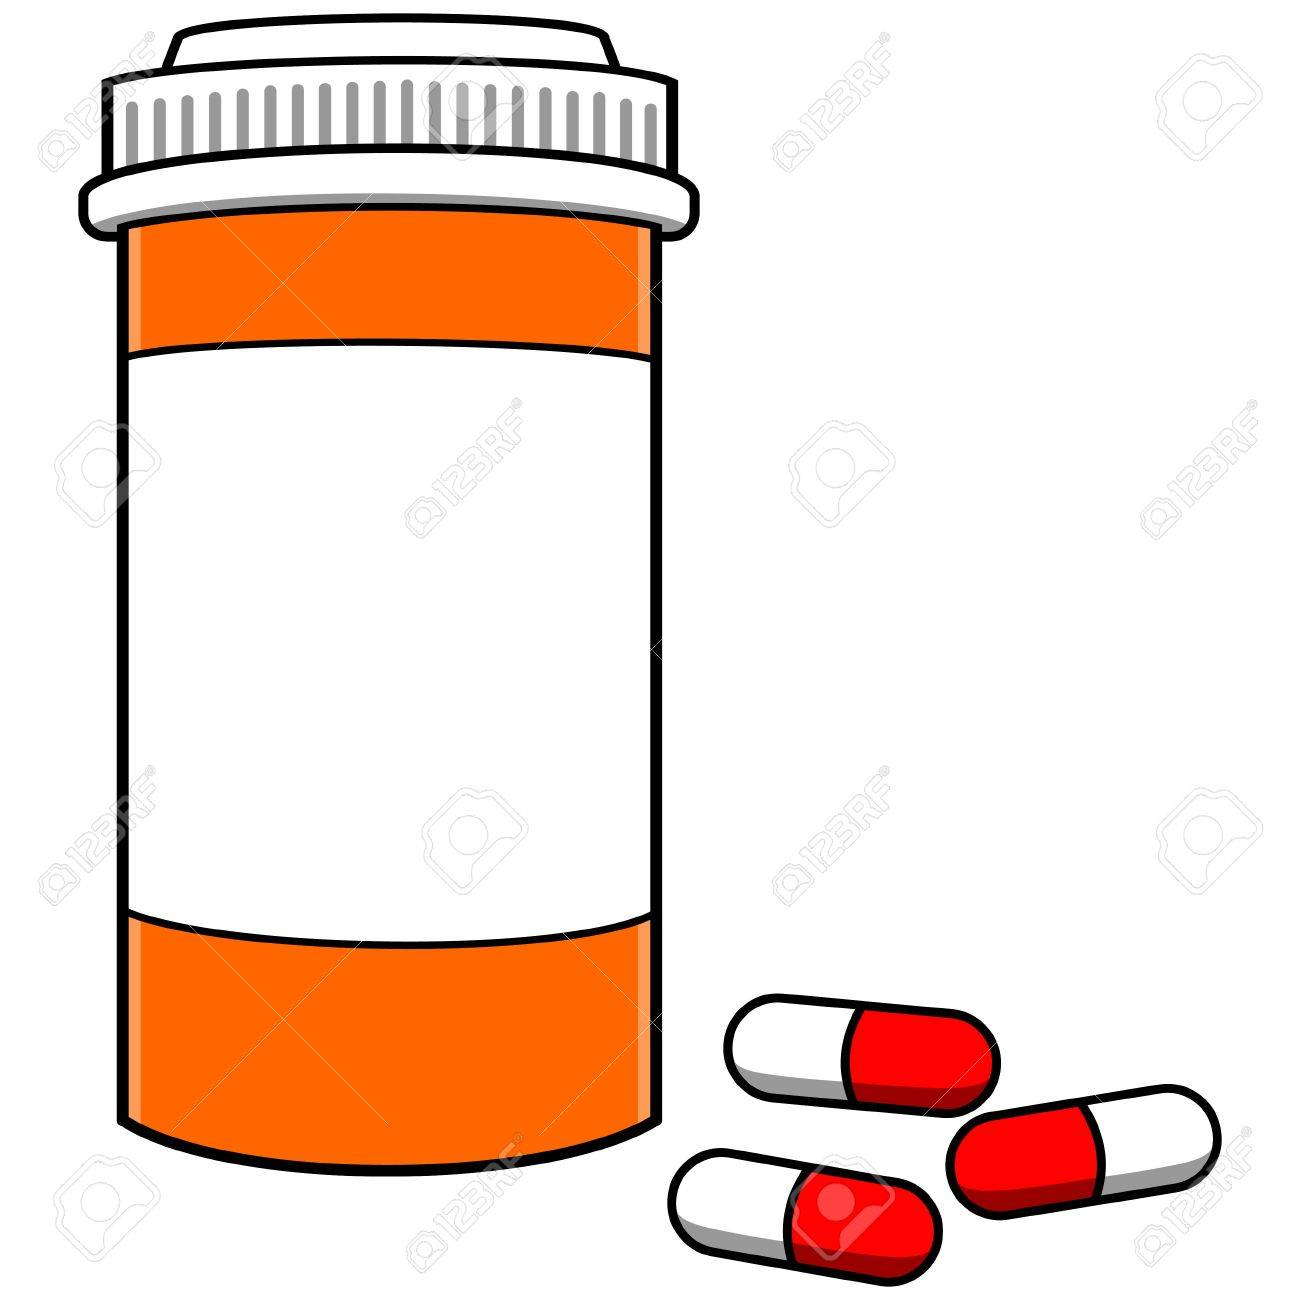 pill bottle with pills royalty free cliparts vectors and stock rh 123rf com  medication bottle clipart